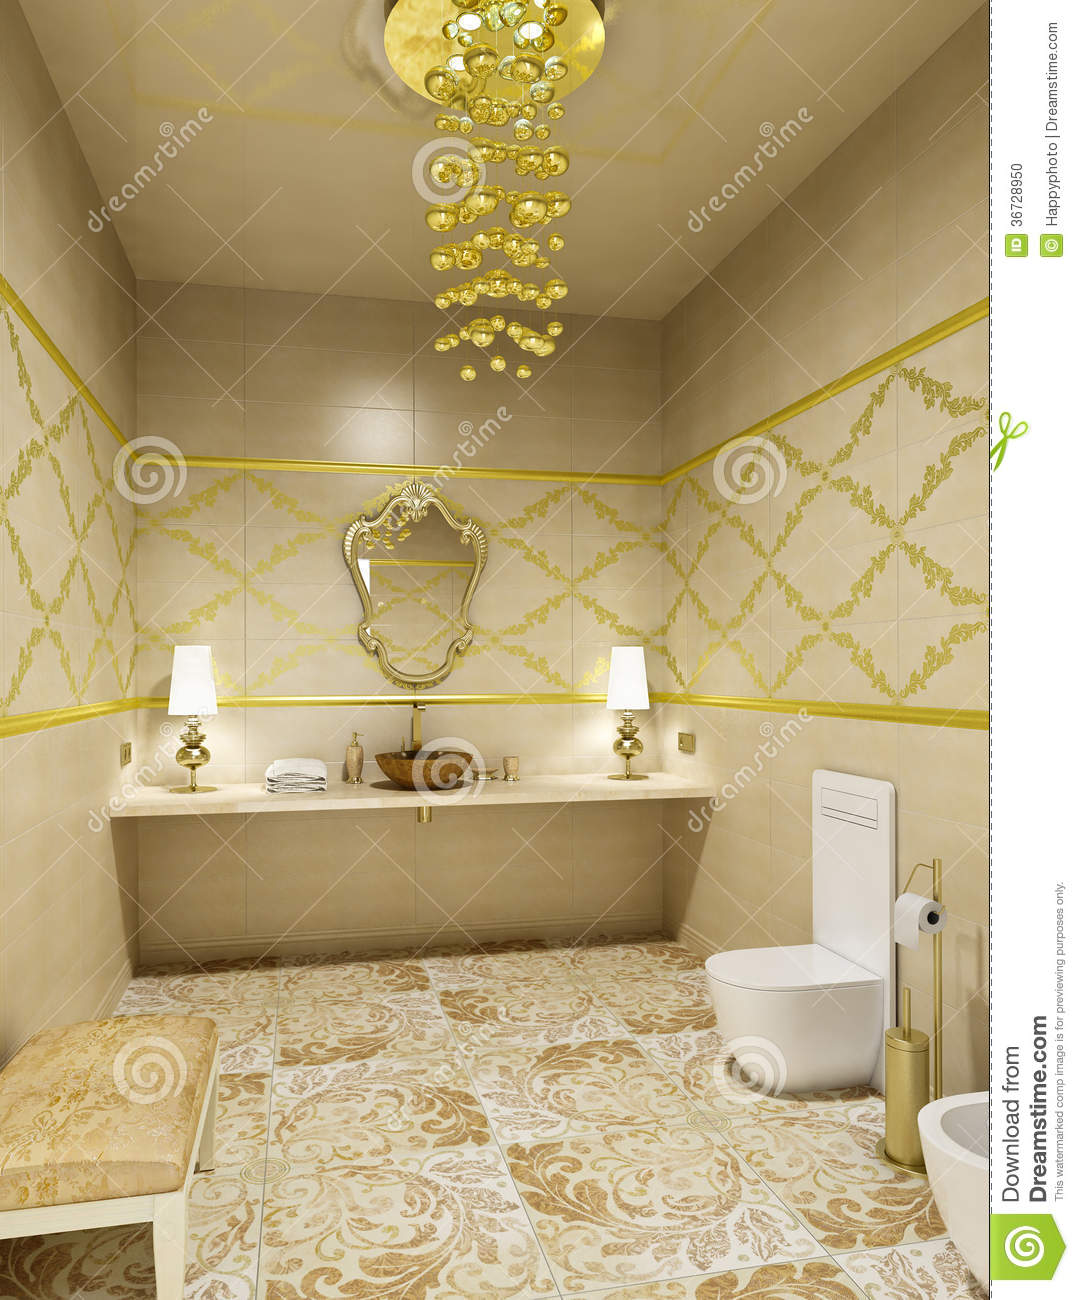 luxury restroom interior stock illustration illustration. Black Bedroom Furniture Sets. Home Design Ideas